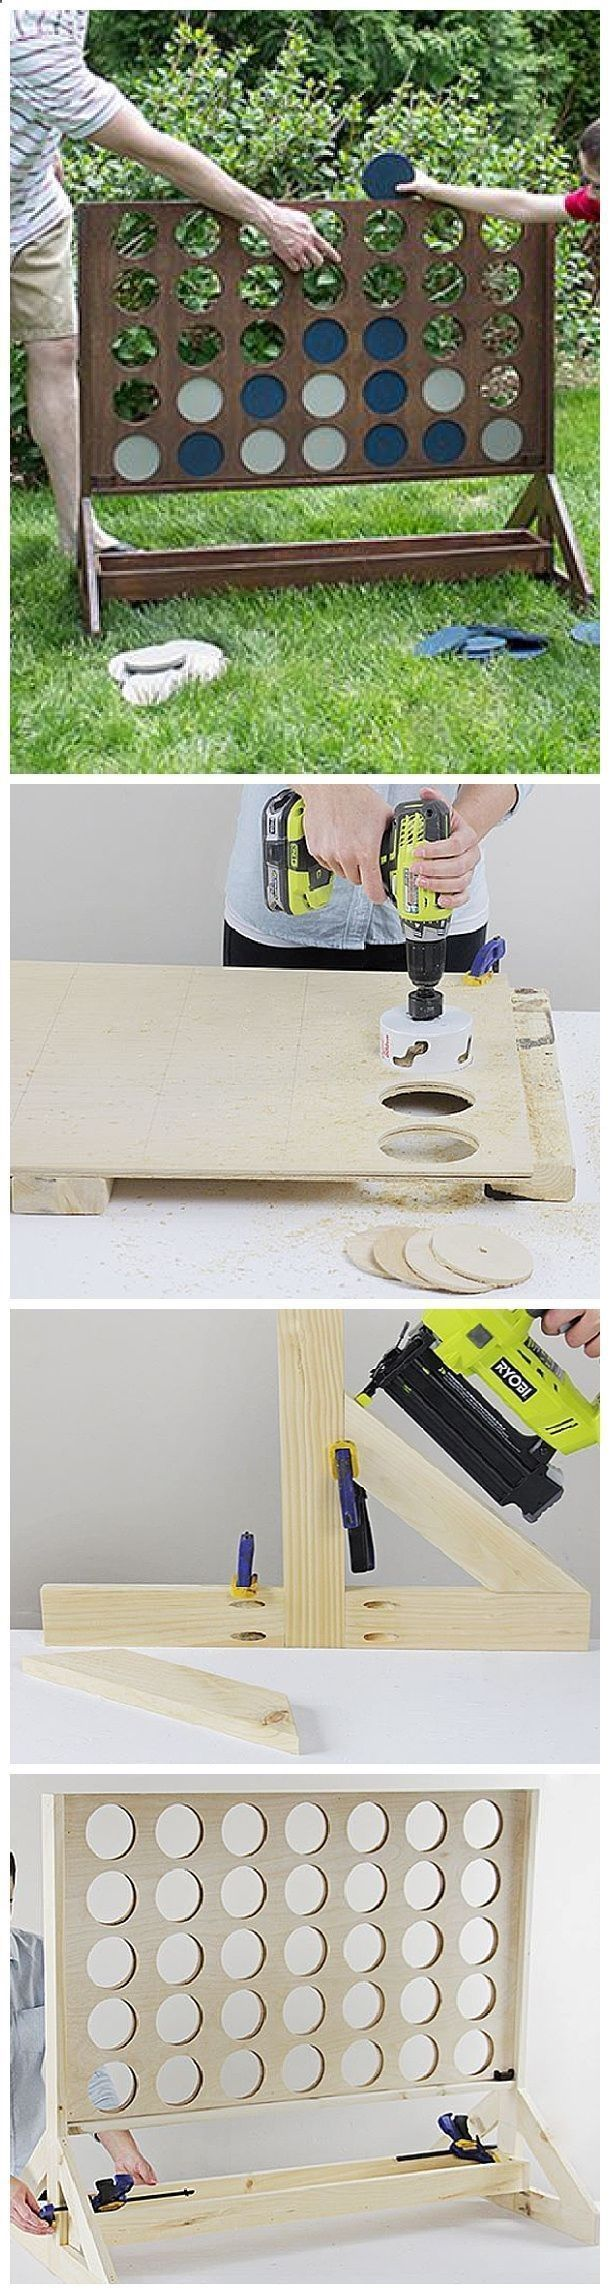 Shed diy diy projects outdoor games do it yourself connect shed diy diy projects outdoor games do it yourself connect four or four in a row game easy woodworking project so fun for backyard partie solutioingenieria Choice Image